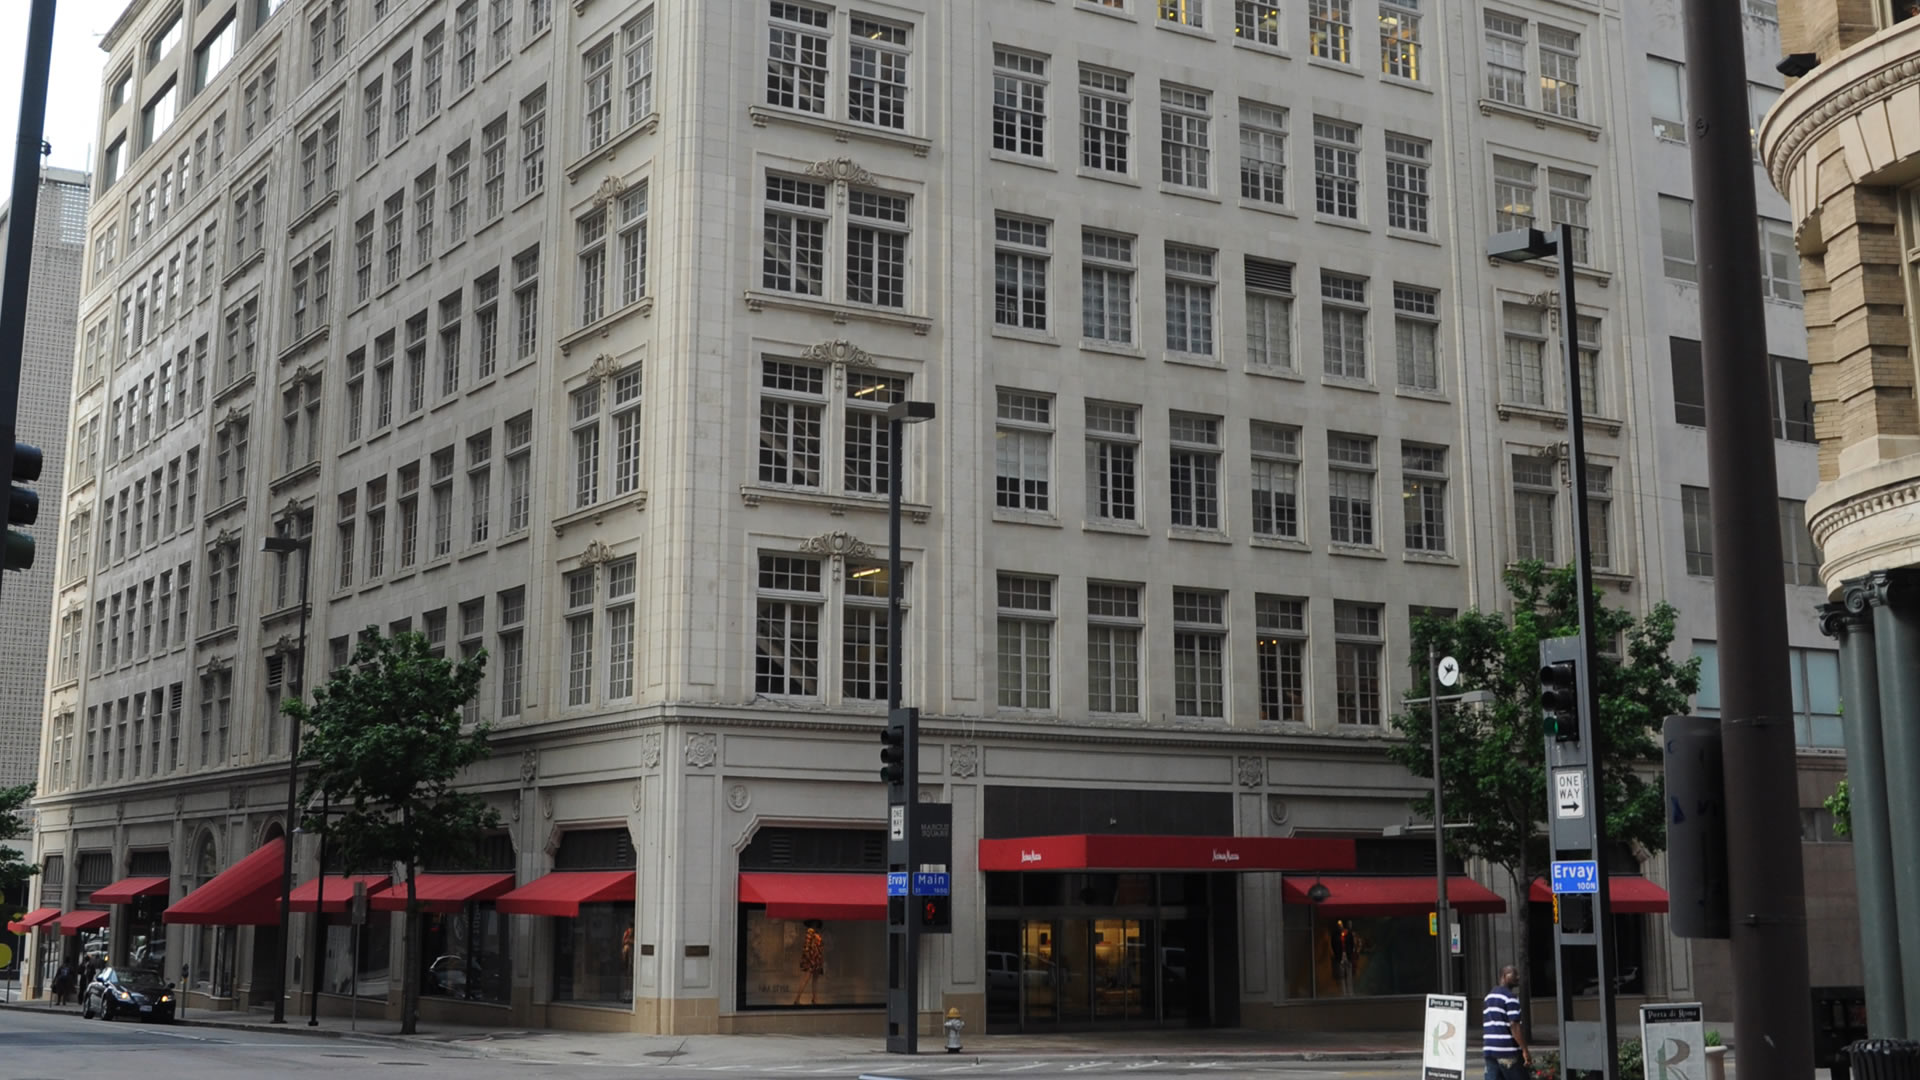 The Neiman Marcus Building is a historic commercial structure located in the Main Street District in downtown Dallas, Texas.